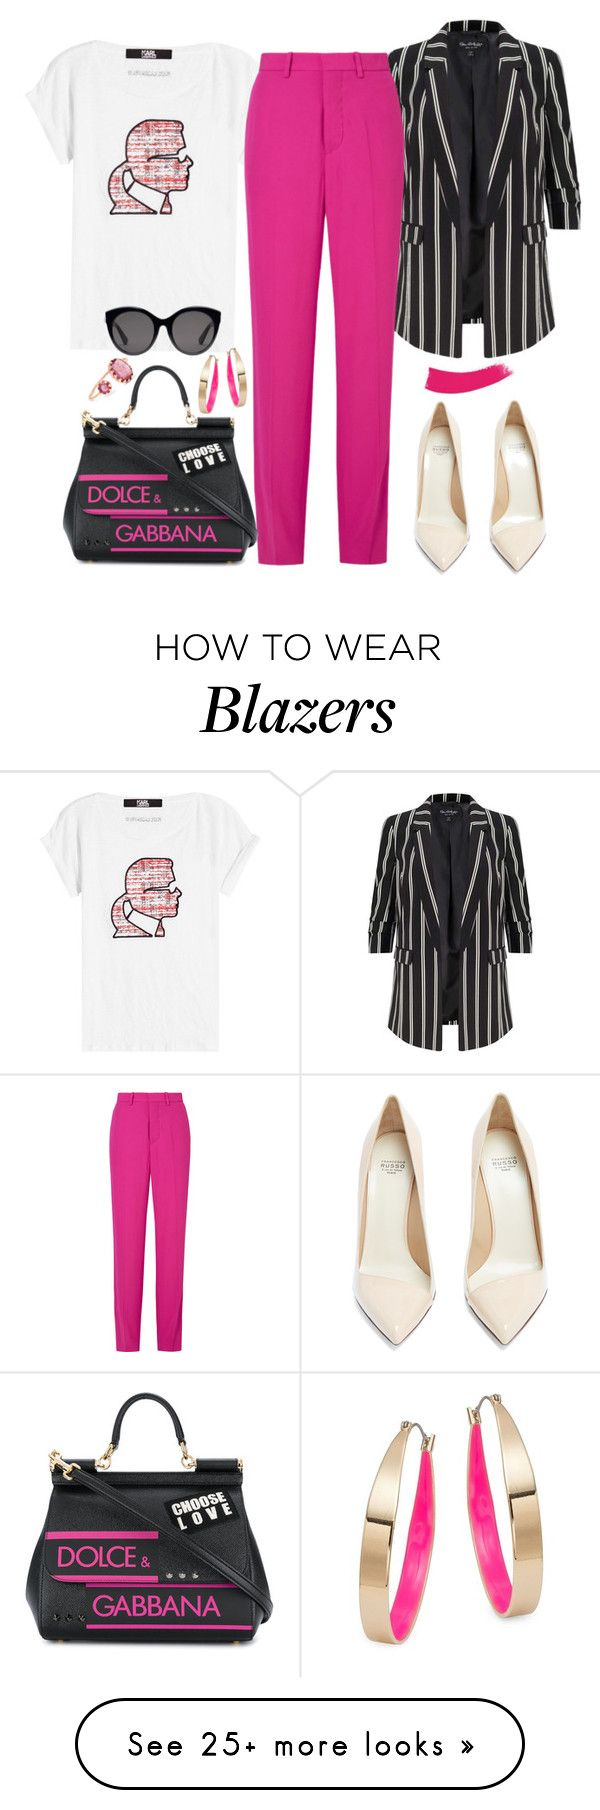 """""""Untitled #229"""" by giotibi on Polyvore featuring Karl Lagerfeld, Miss Selfridge, Marni, Dolce&Gabbana, Gucci, Pascale Monvoisin, Design Lab, Francesco Russo, contestentry and NYFWHotPink"""